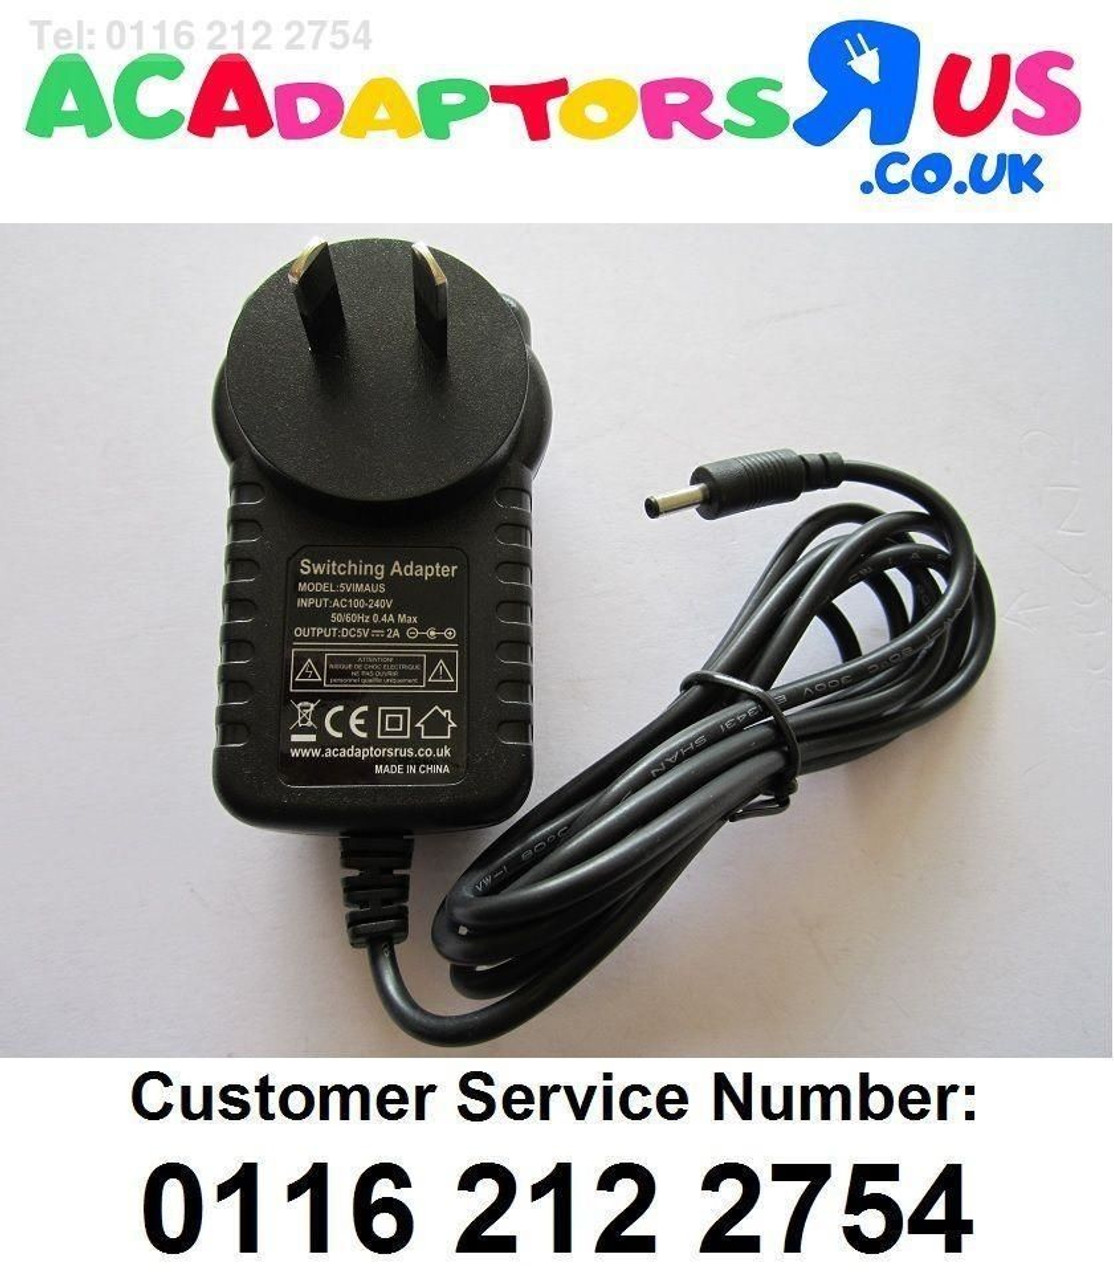 582146731d3 ... adaptor; Replacement power supply for 5V Saitek PZ44 Pro Flight Yoke;  aus 5v mains ac-dc ...